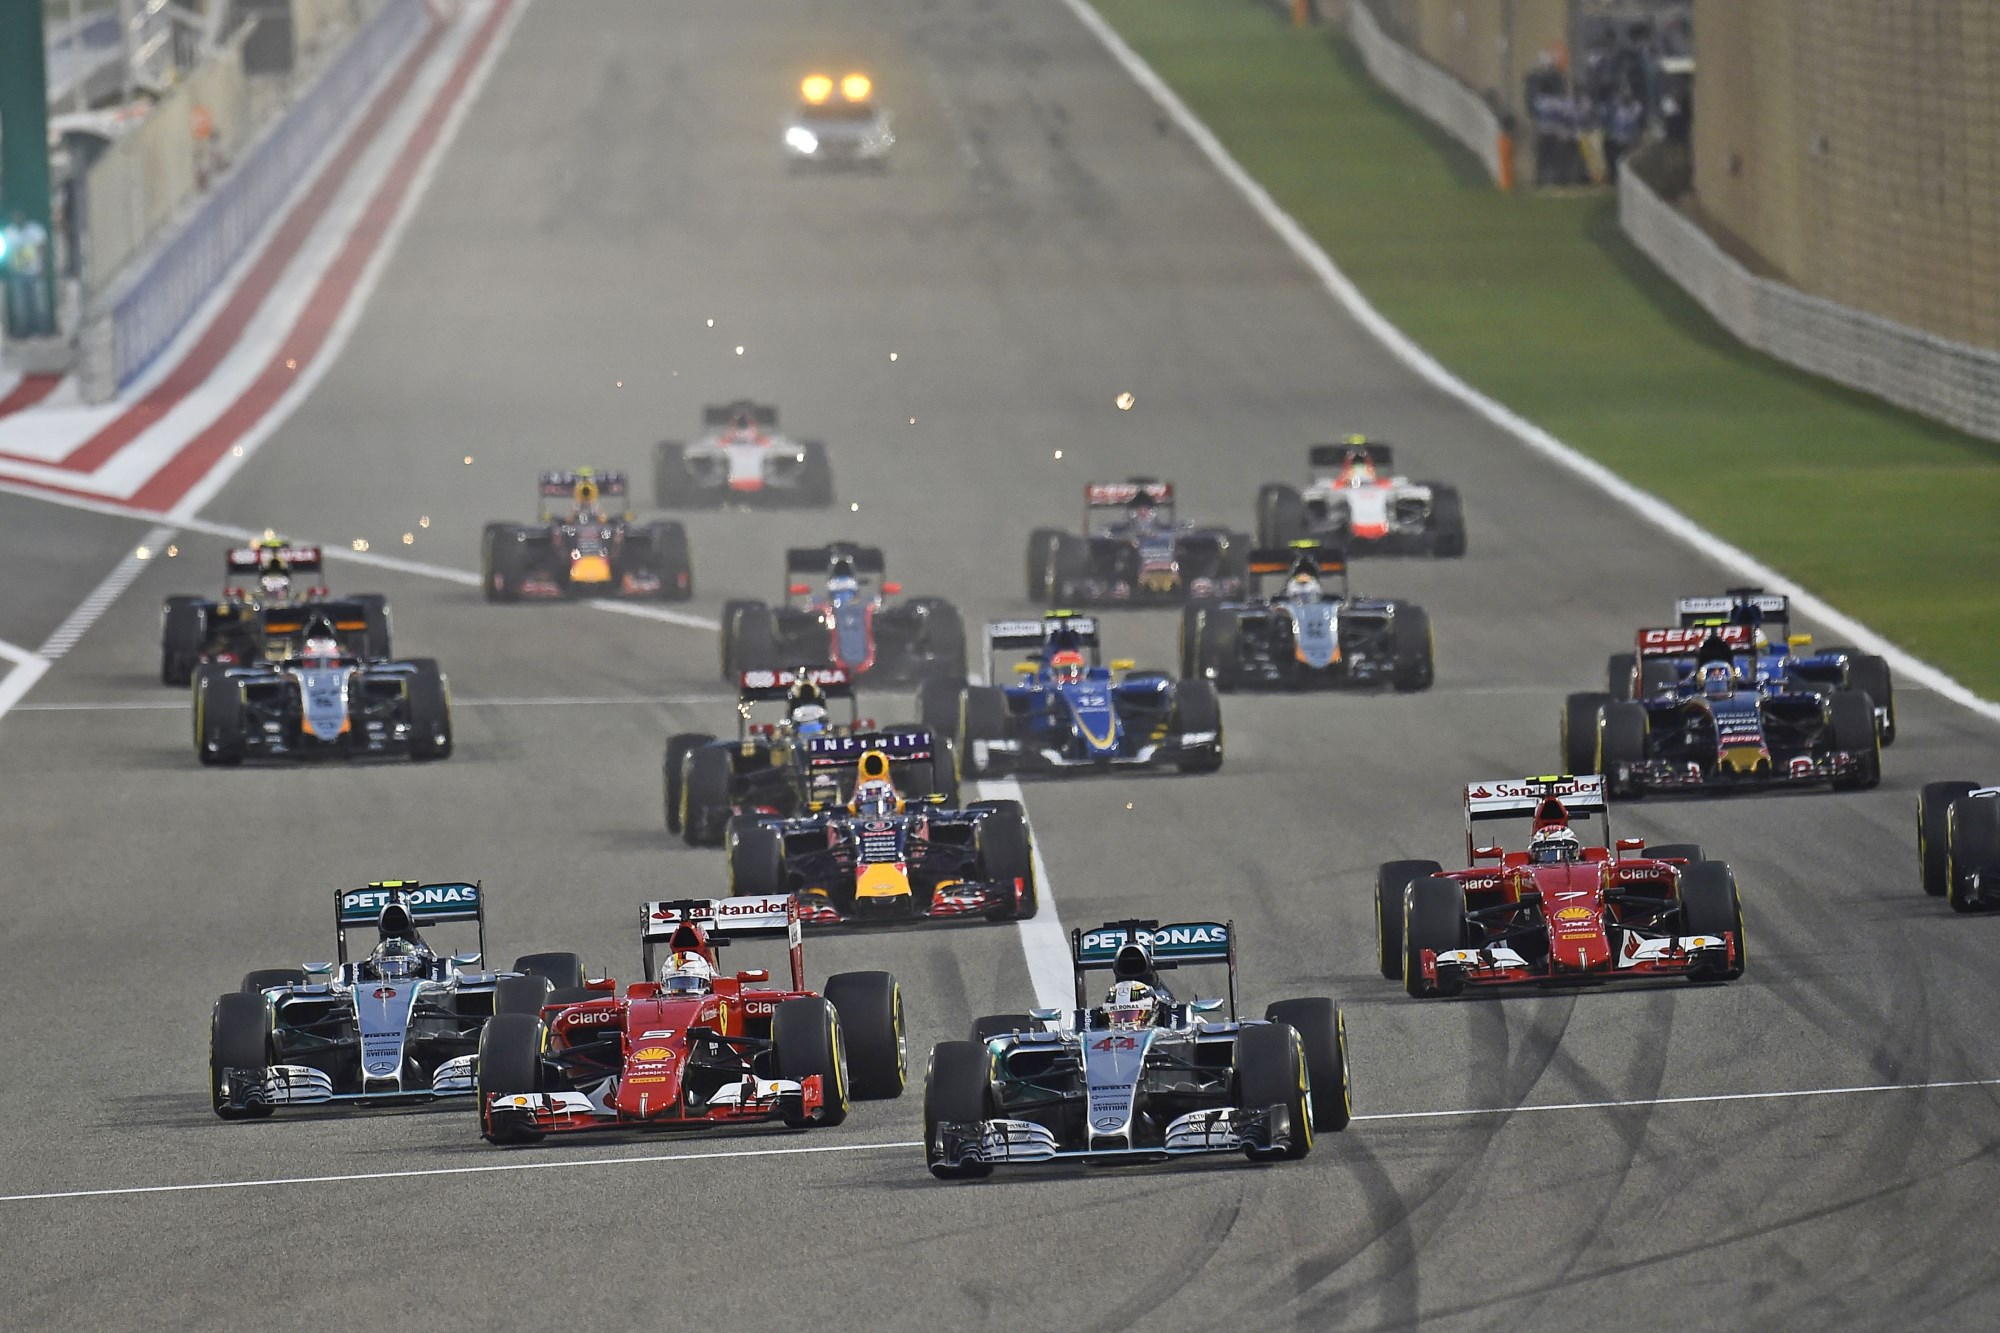 bahrain-f1-2015-start of the race